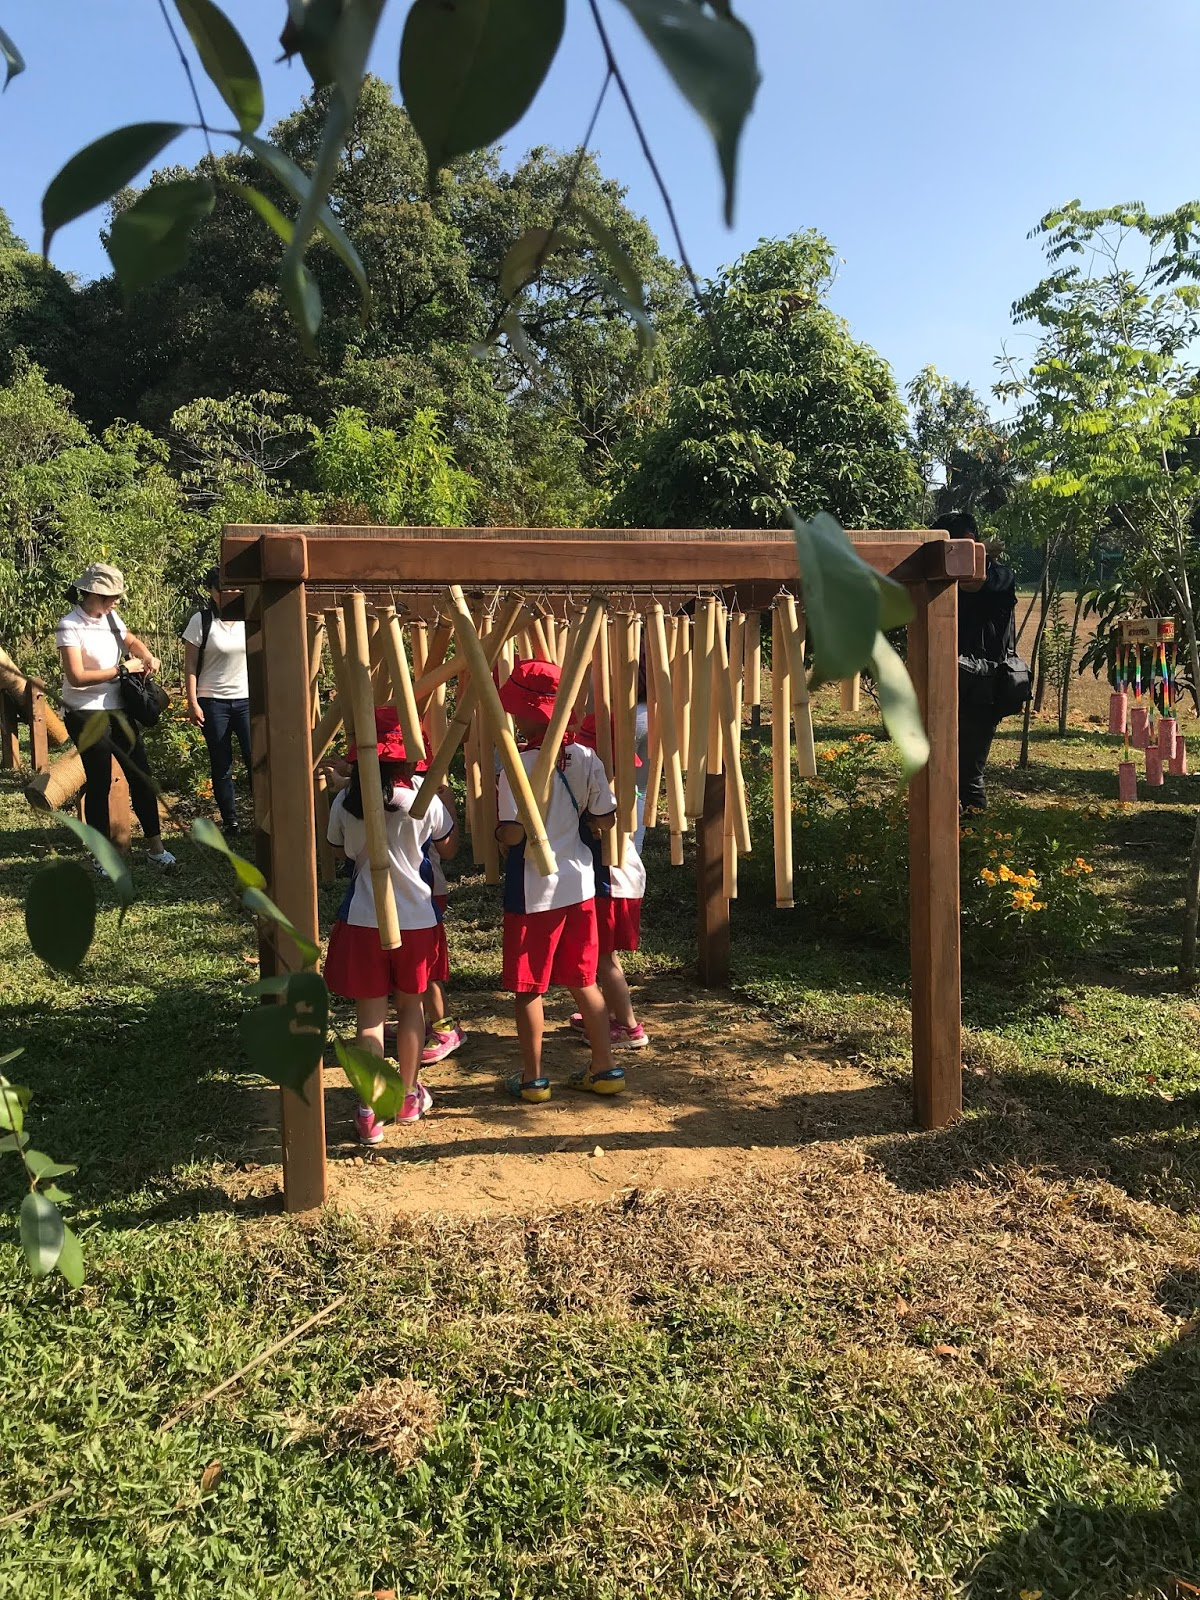 Children can also stimulate their senses by playing with the 'musical instruments' in the playgarden.